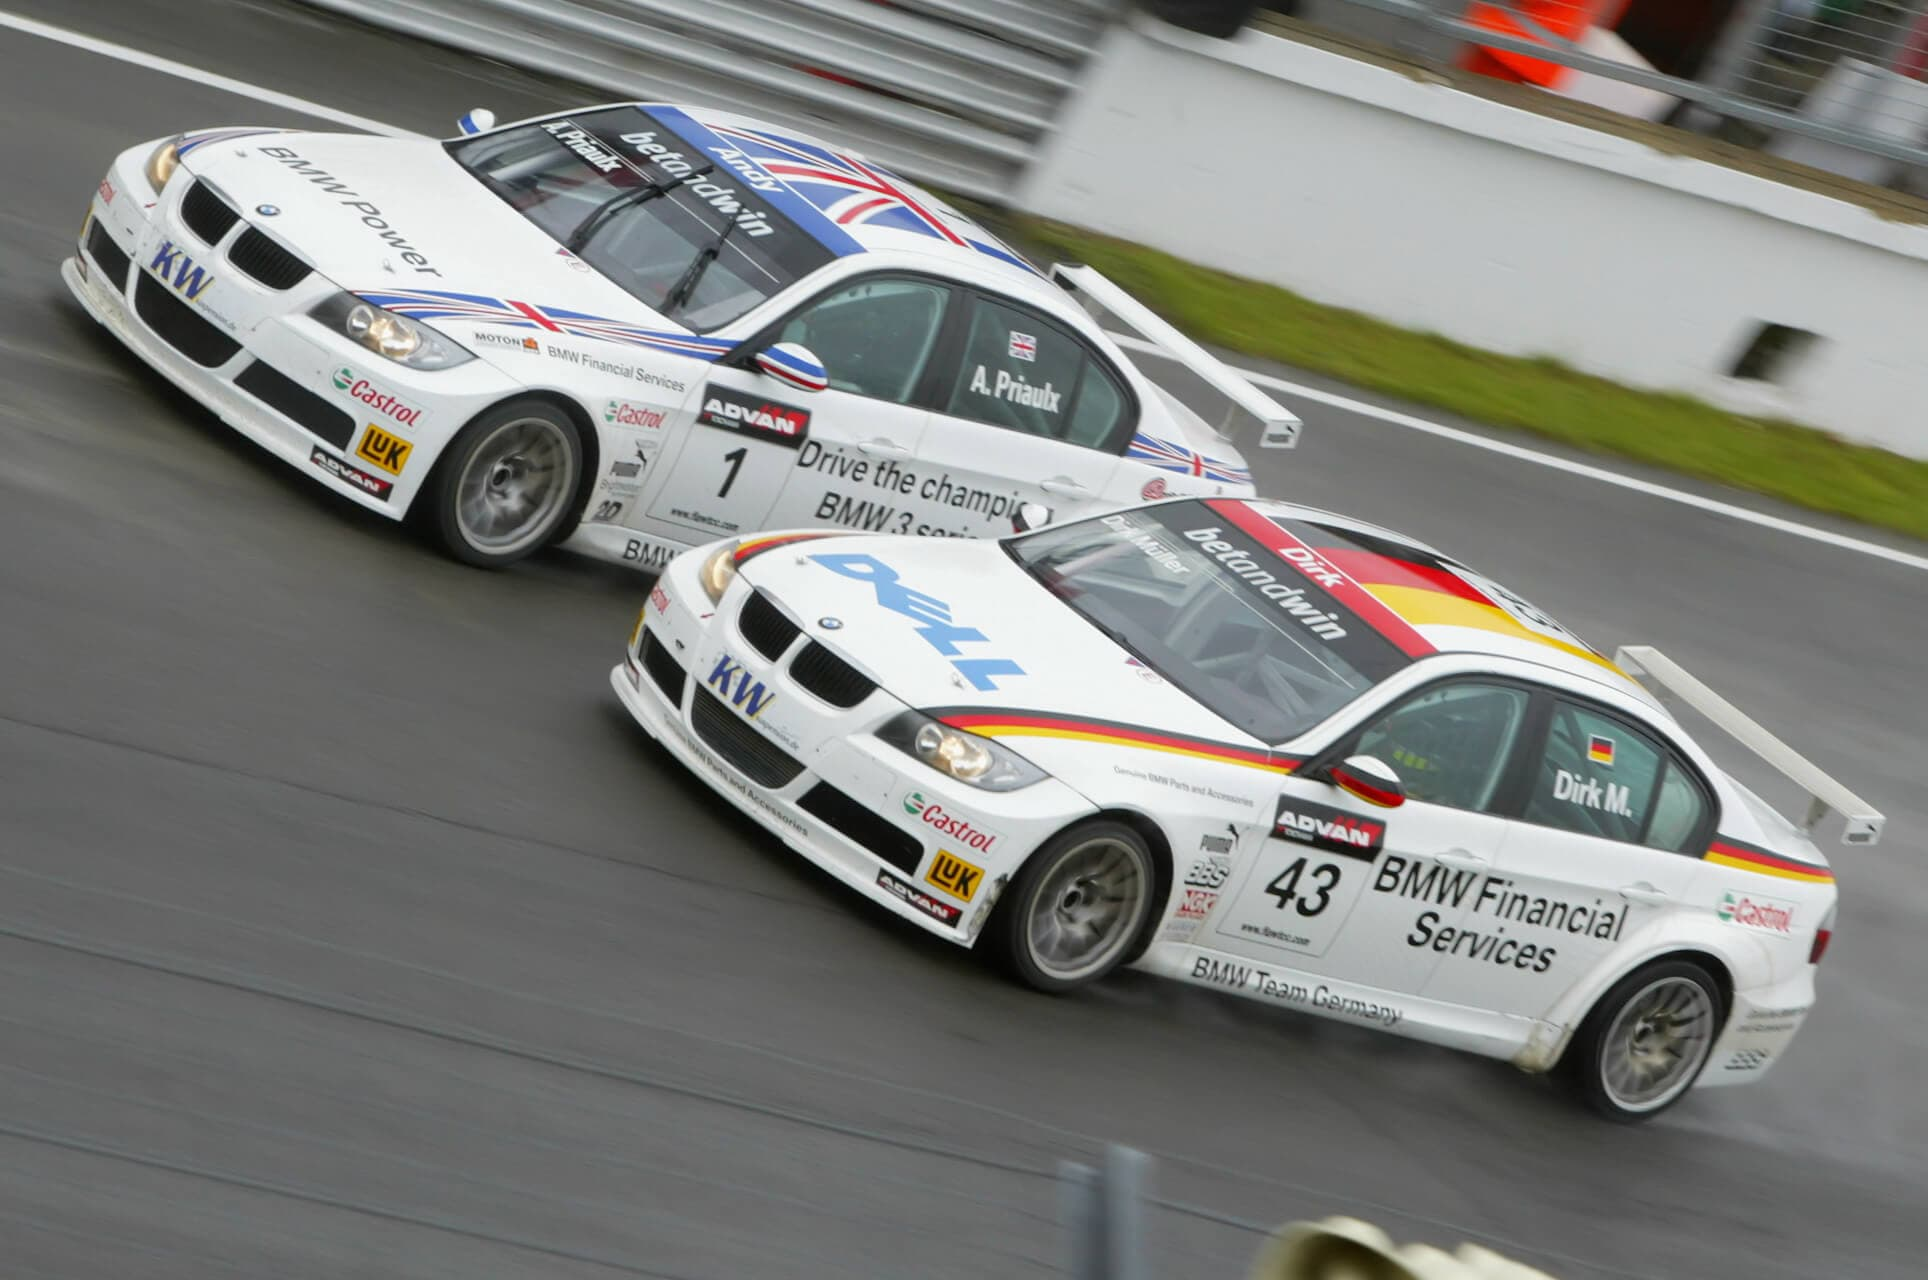 Racing In The UK – Earning Your Racing License